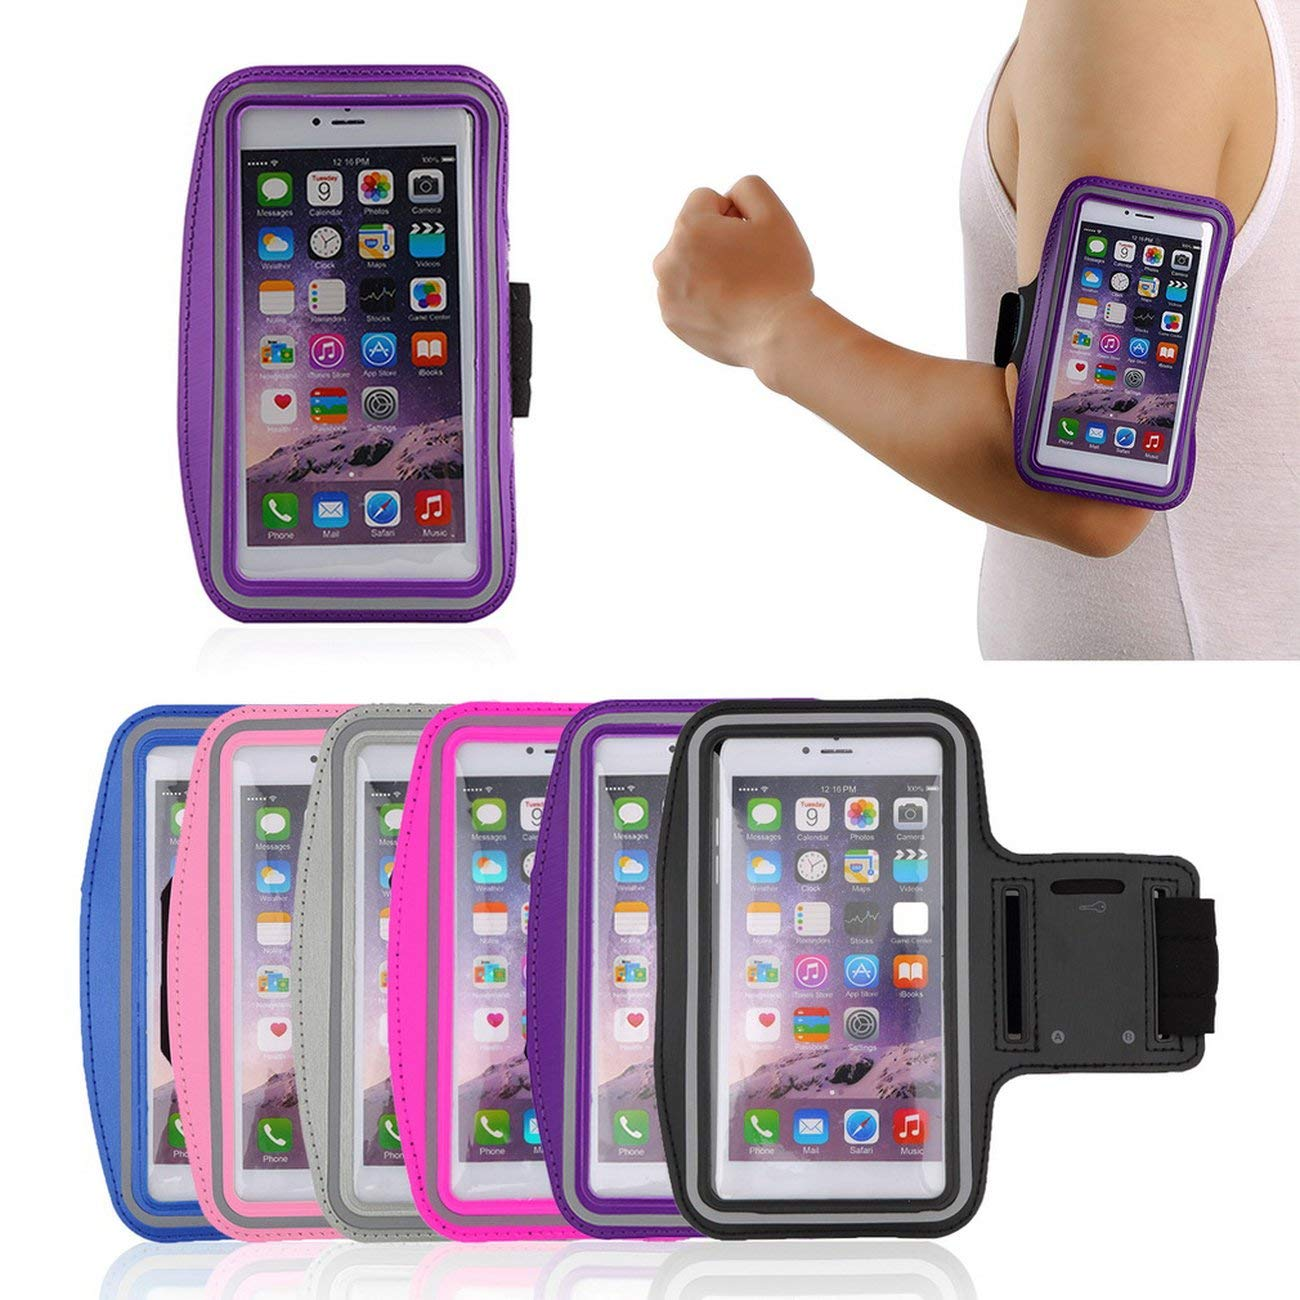 Waterproof Running Jogging Sports Gym Armband Cover Holder iPhone 6 Plus Jiobapiongxin